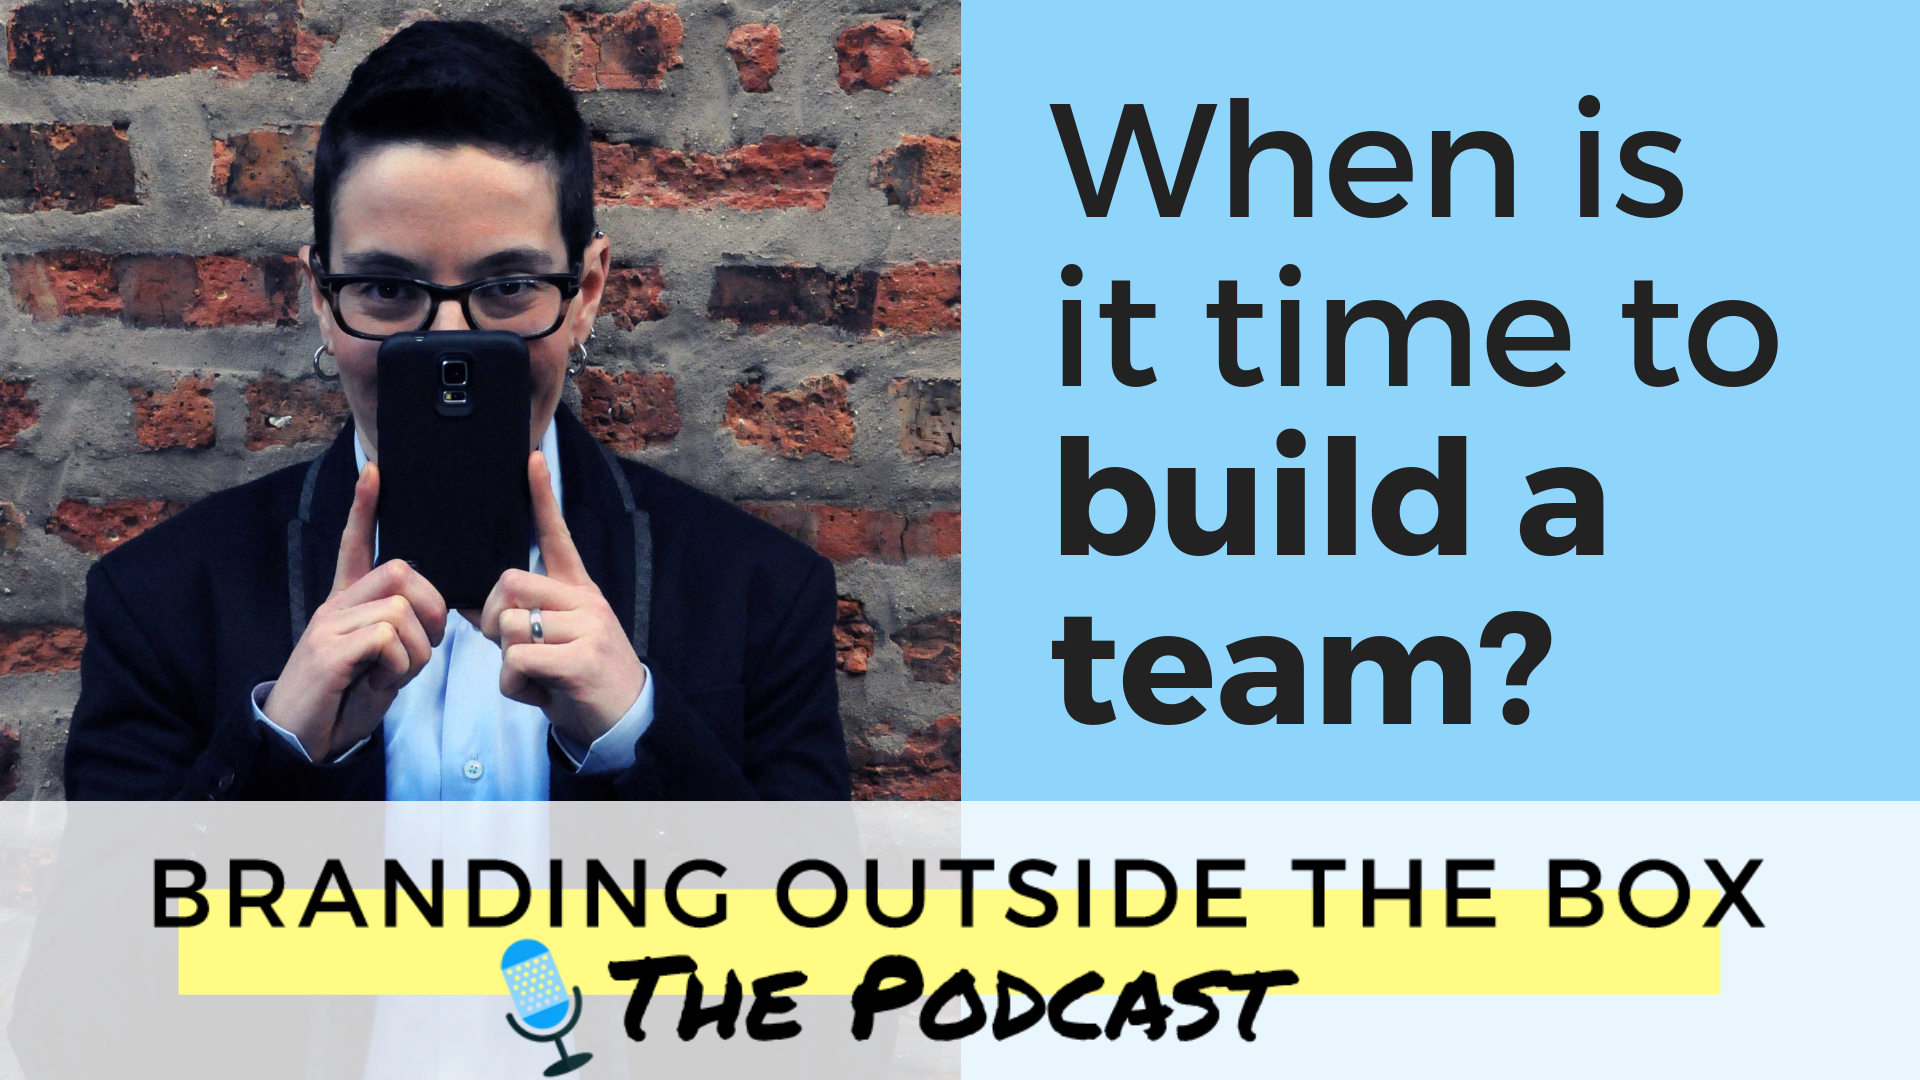 When is it time to build a team?